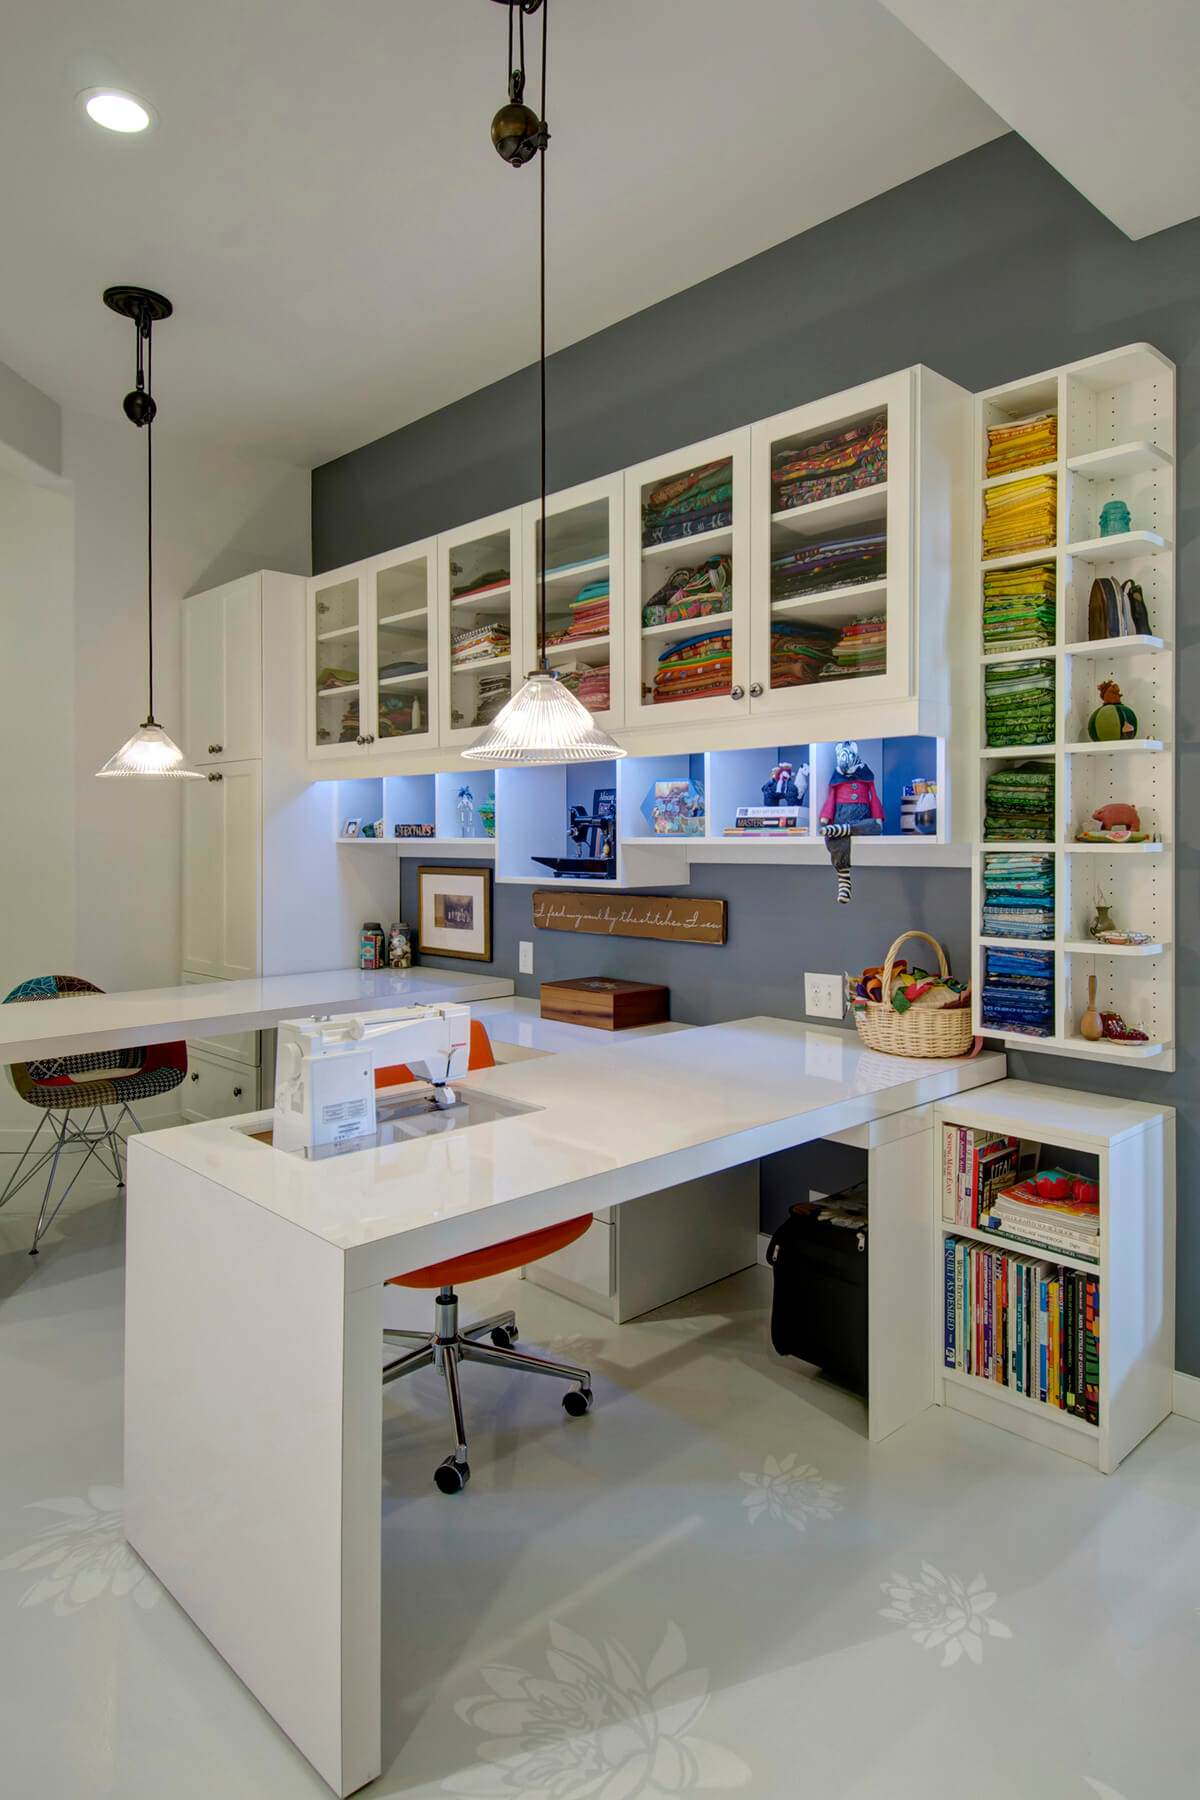 Top 23 Craft Room Design Ideas (Creative Rooms) ZN57